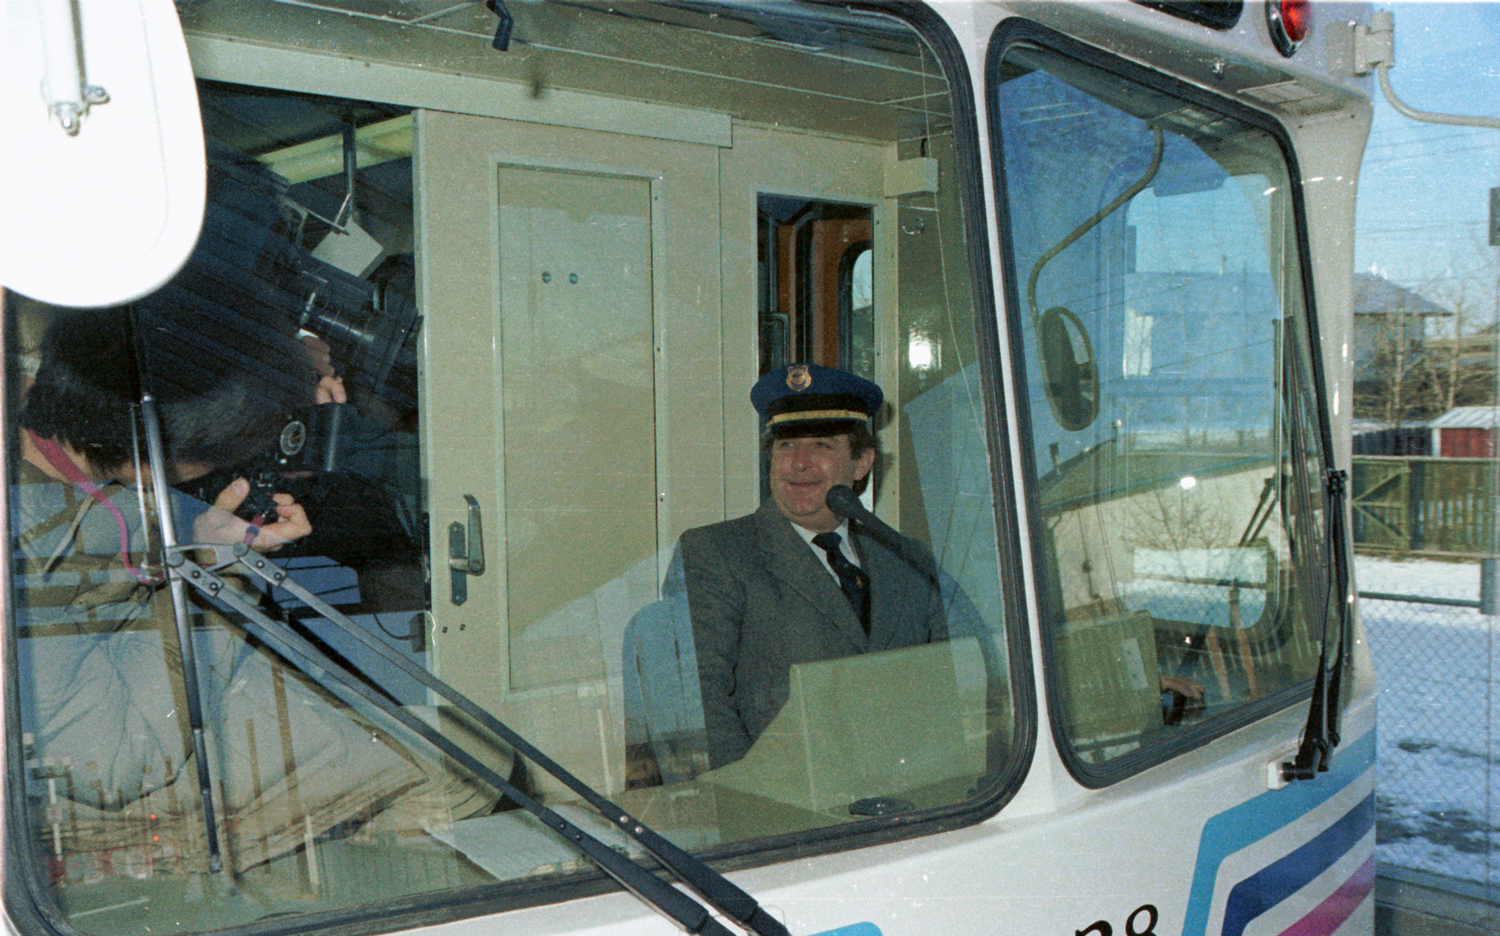 Mayor Ralph Klein driving the CTrain on inauguration day, 25 May 1981